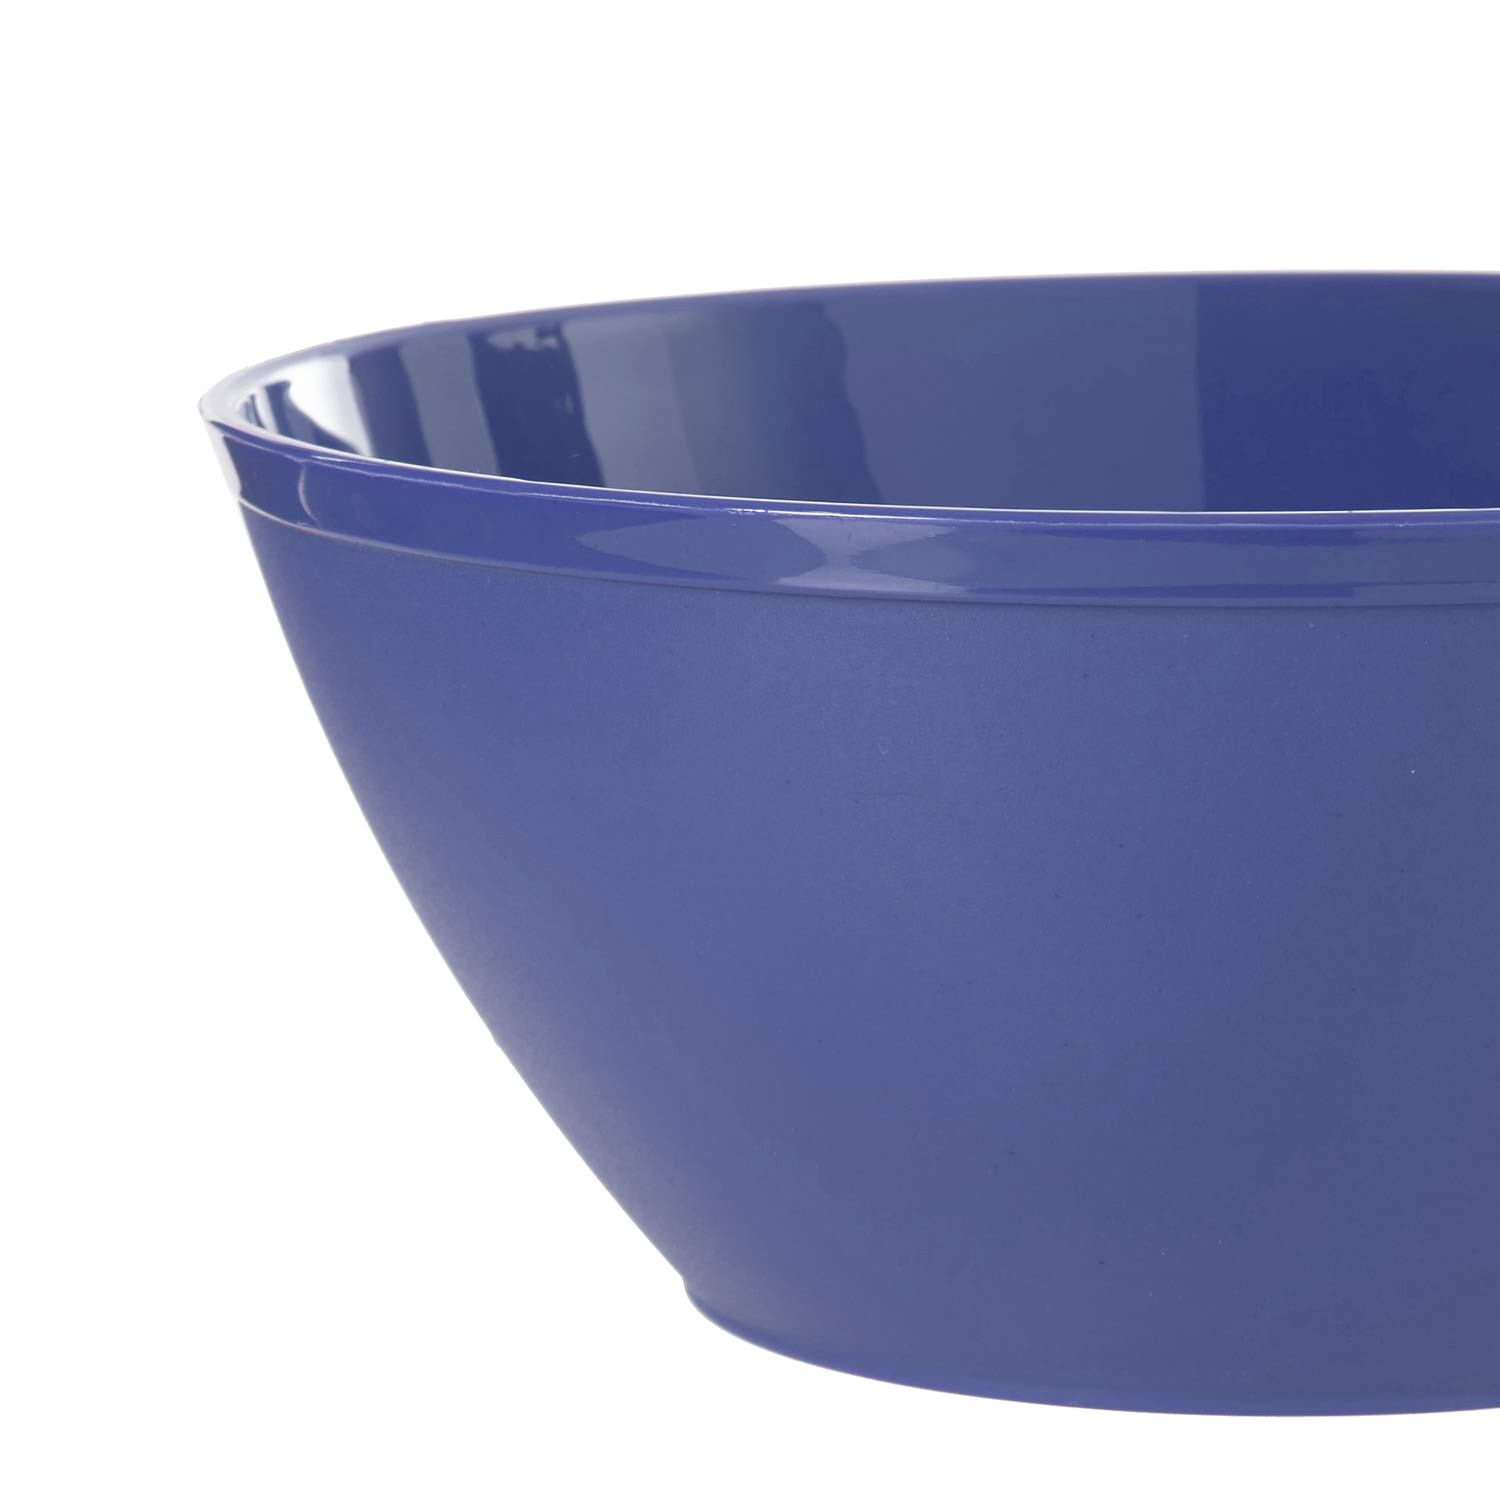 Fresco 6-inch Plastic Bowls for Cereal or Salad | set of 8 in 4 Coastal Colors by US Acrylic (Image #6)